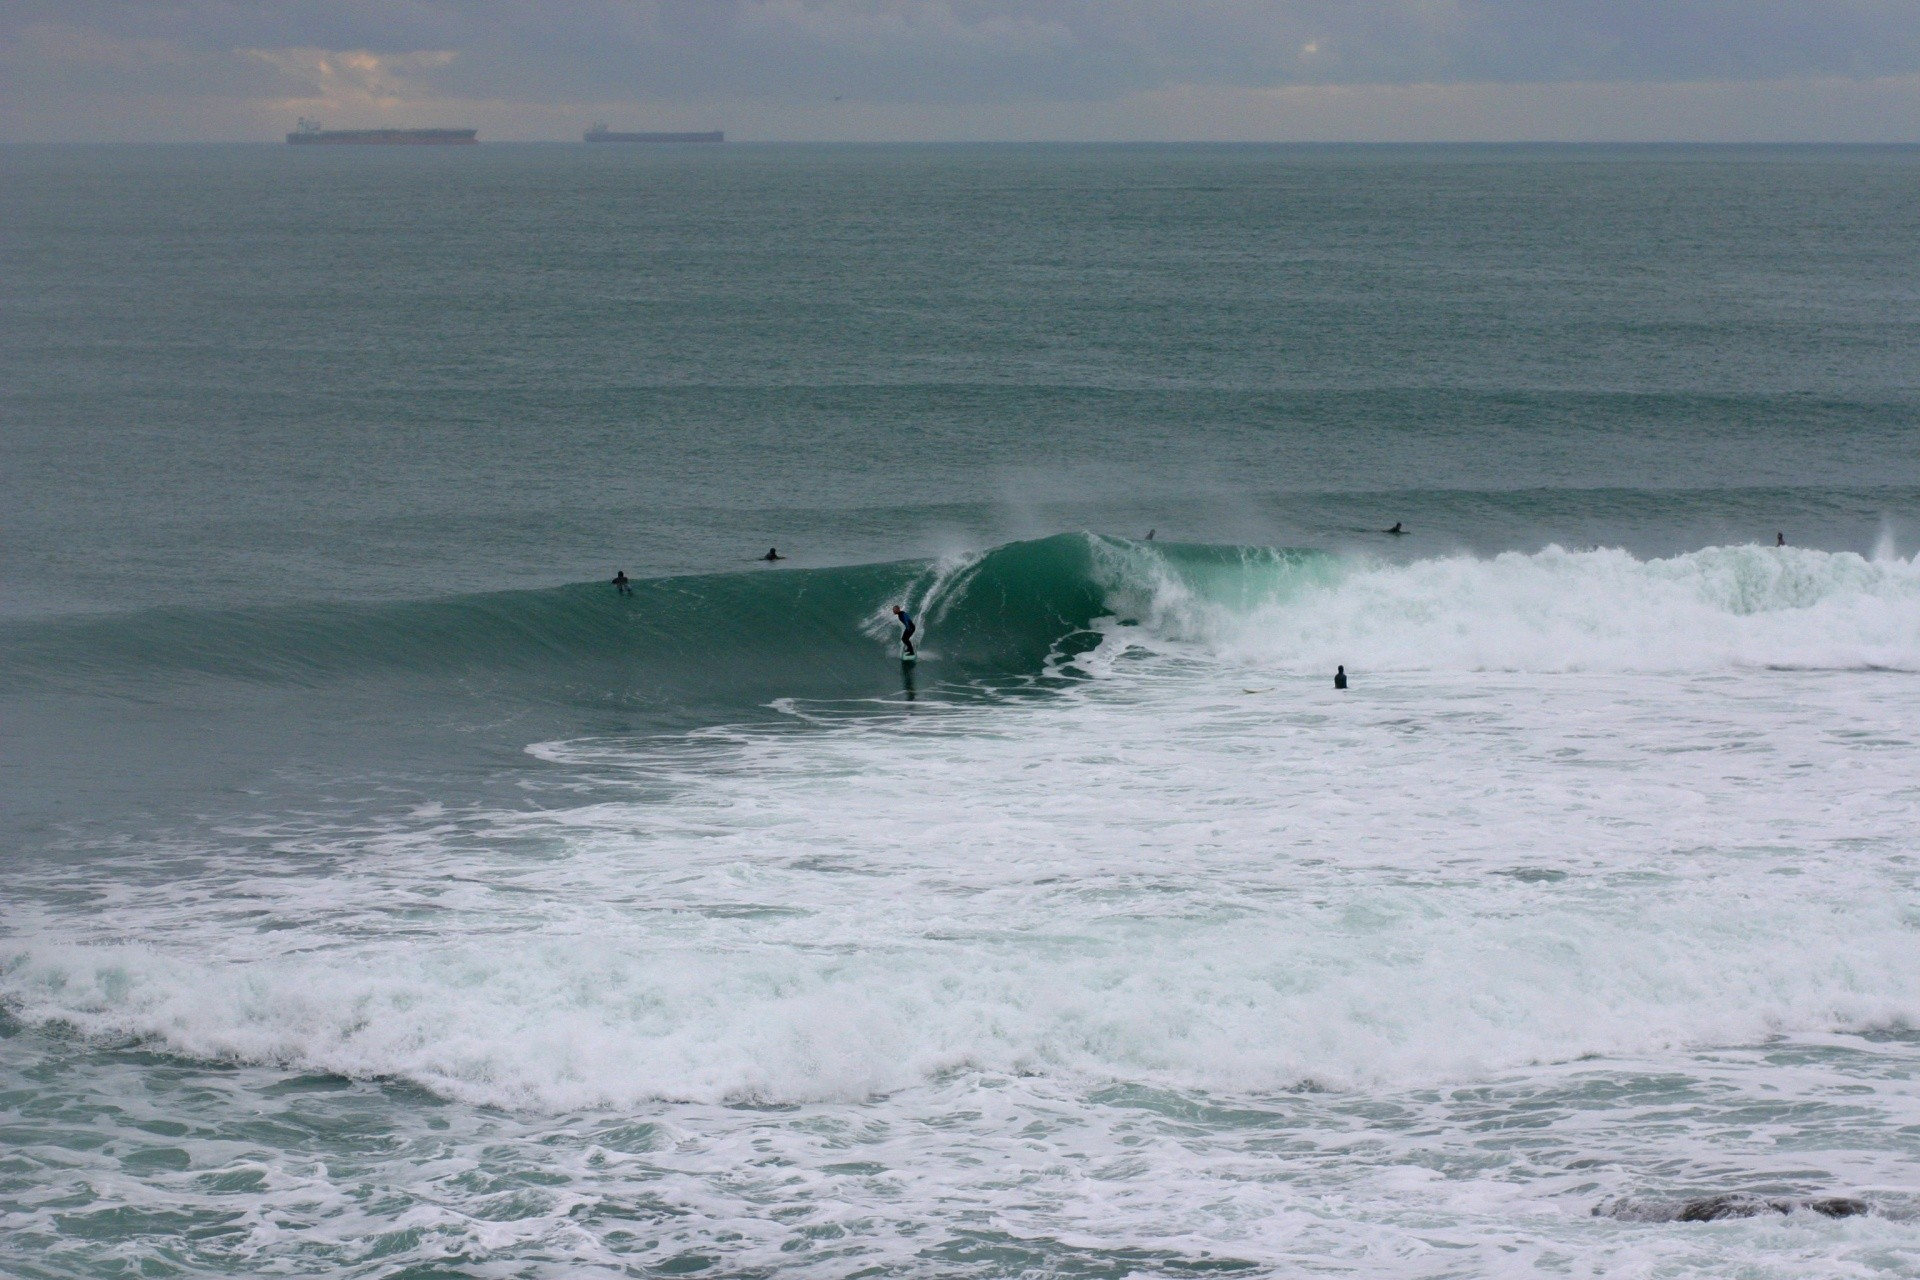 IanButs's photo of Porthleven